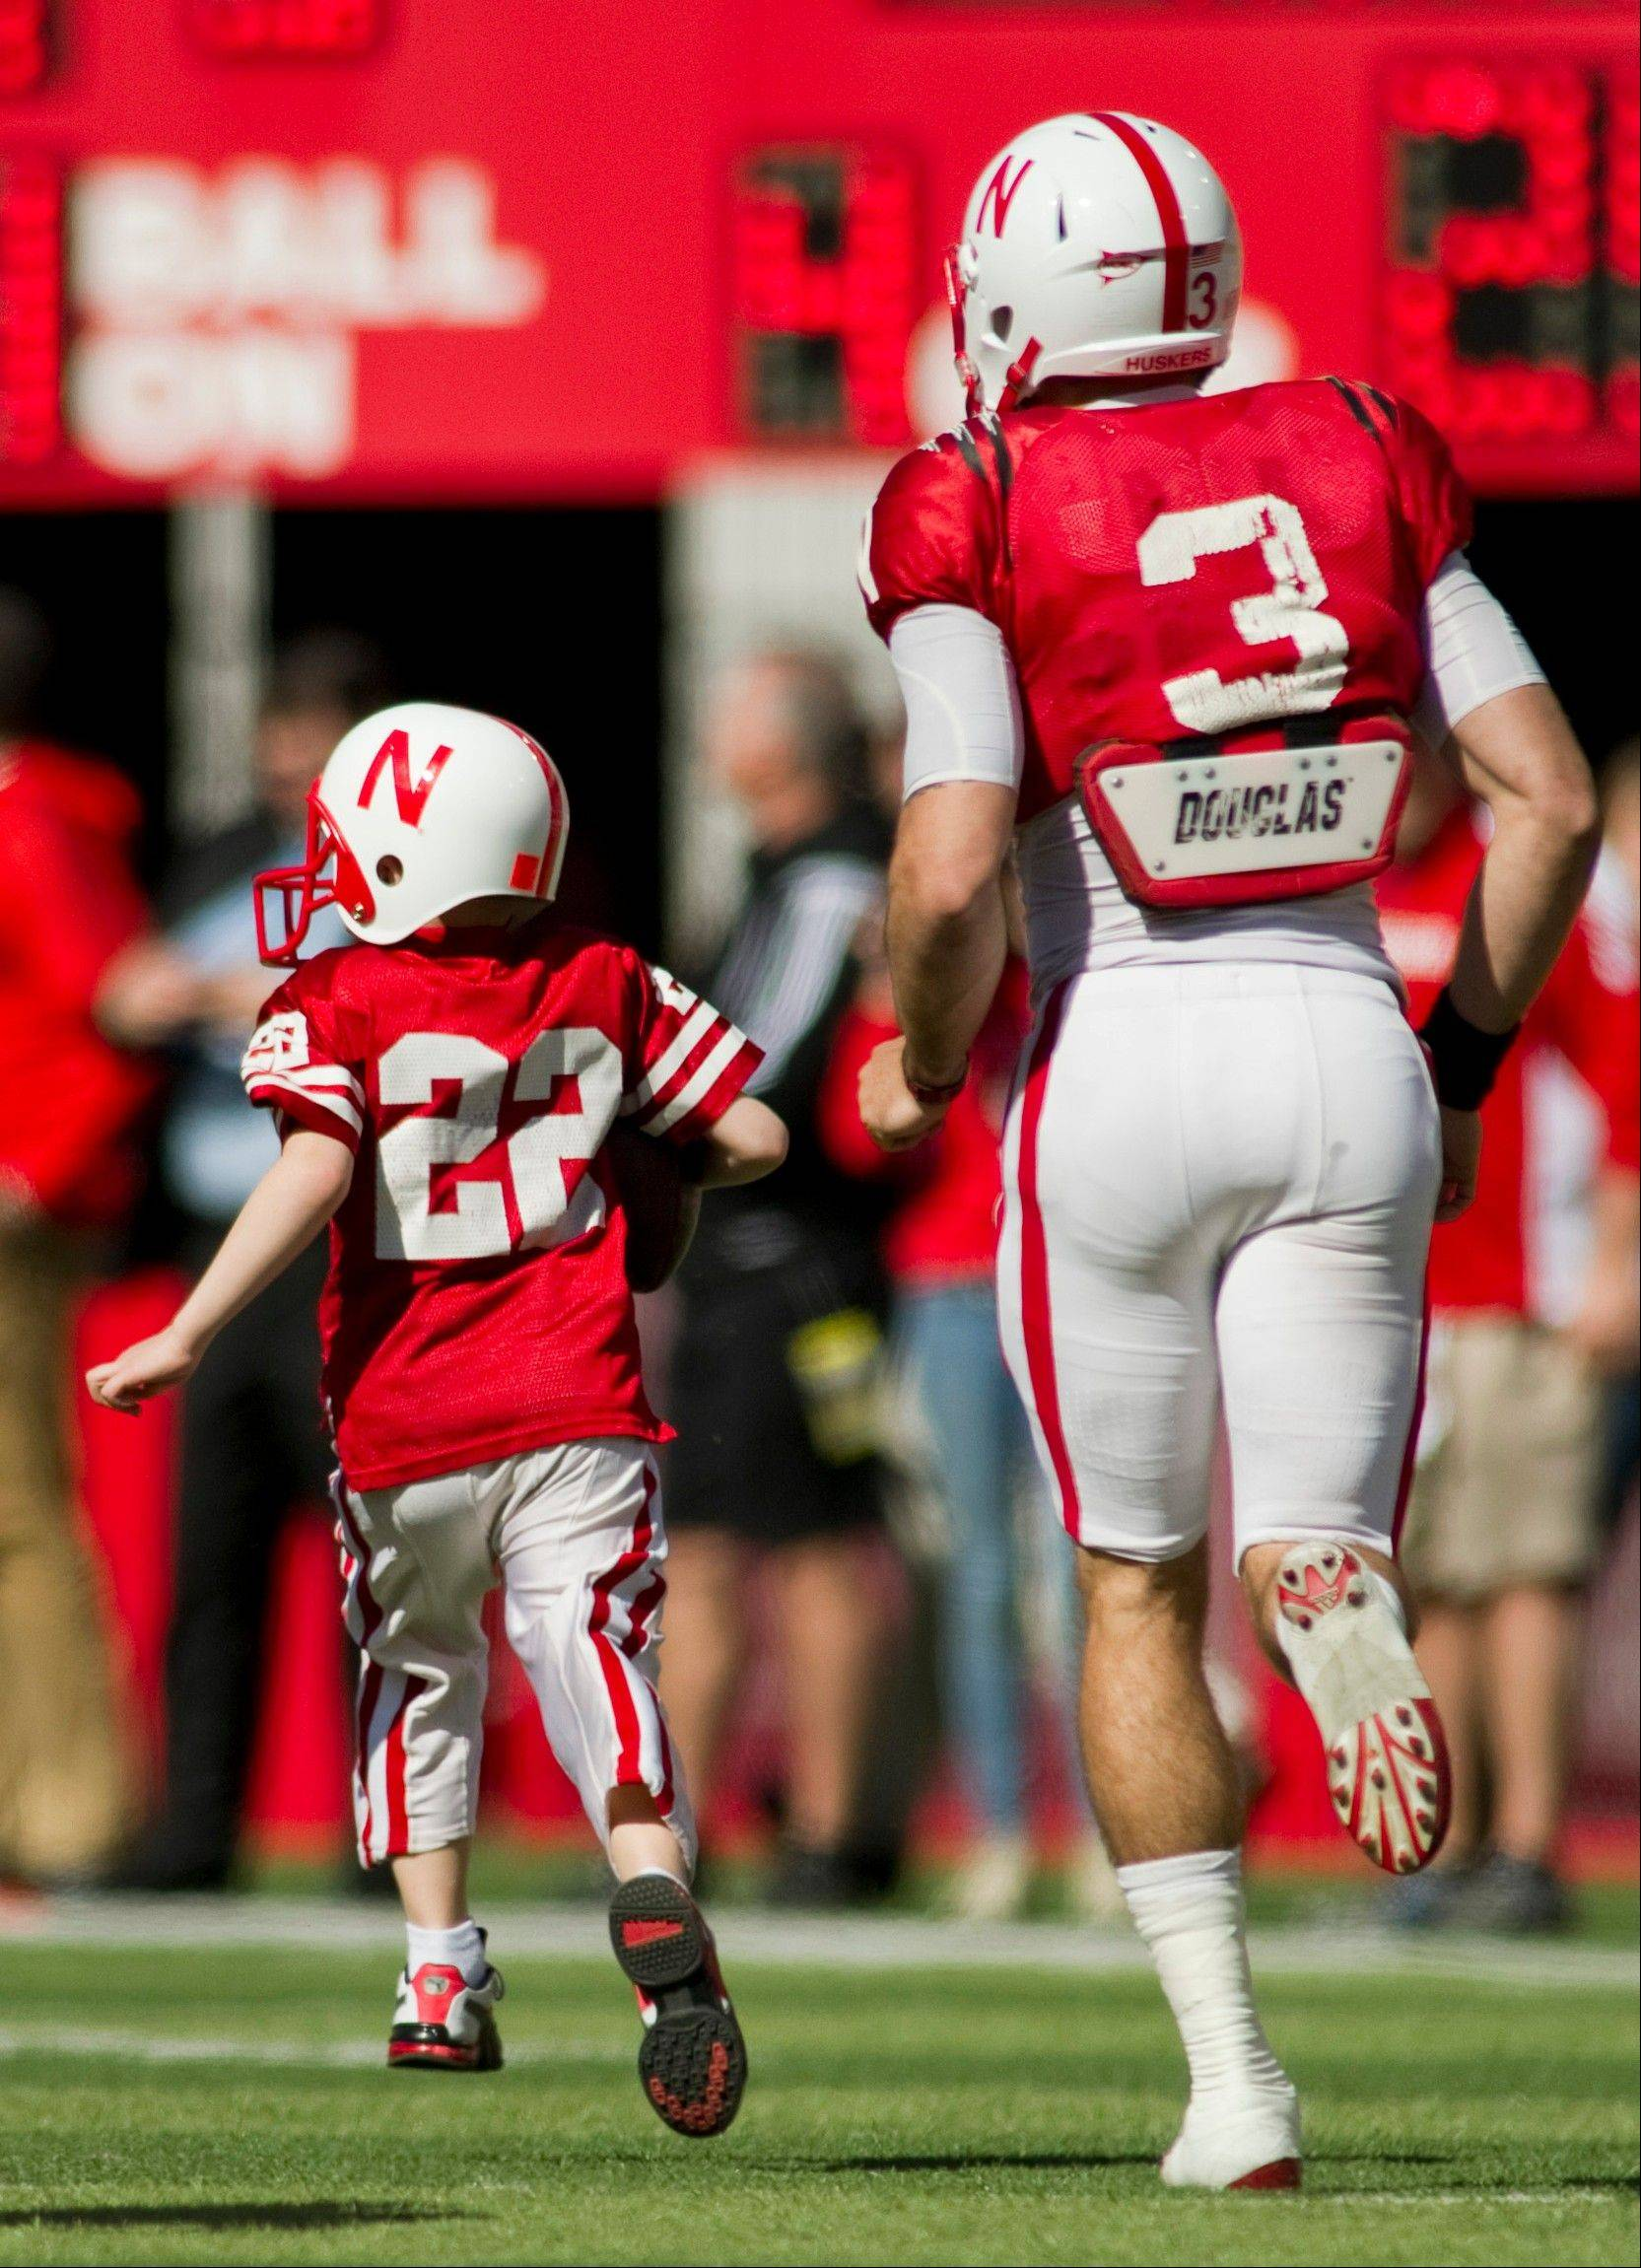 Nebraska's Taylor Martinez (3) guides Jack Hoffman of Atkinson, Neb., down the field for his touchdown play during a special segment dedicated to Jack at the Red-White spring game at Memorial Stadium in Lincoln, Neb.